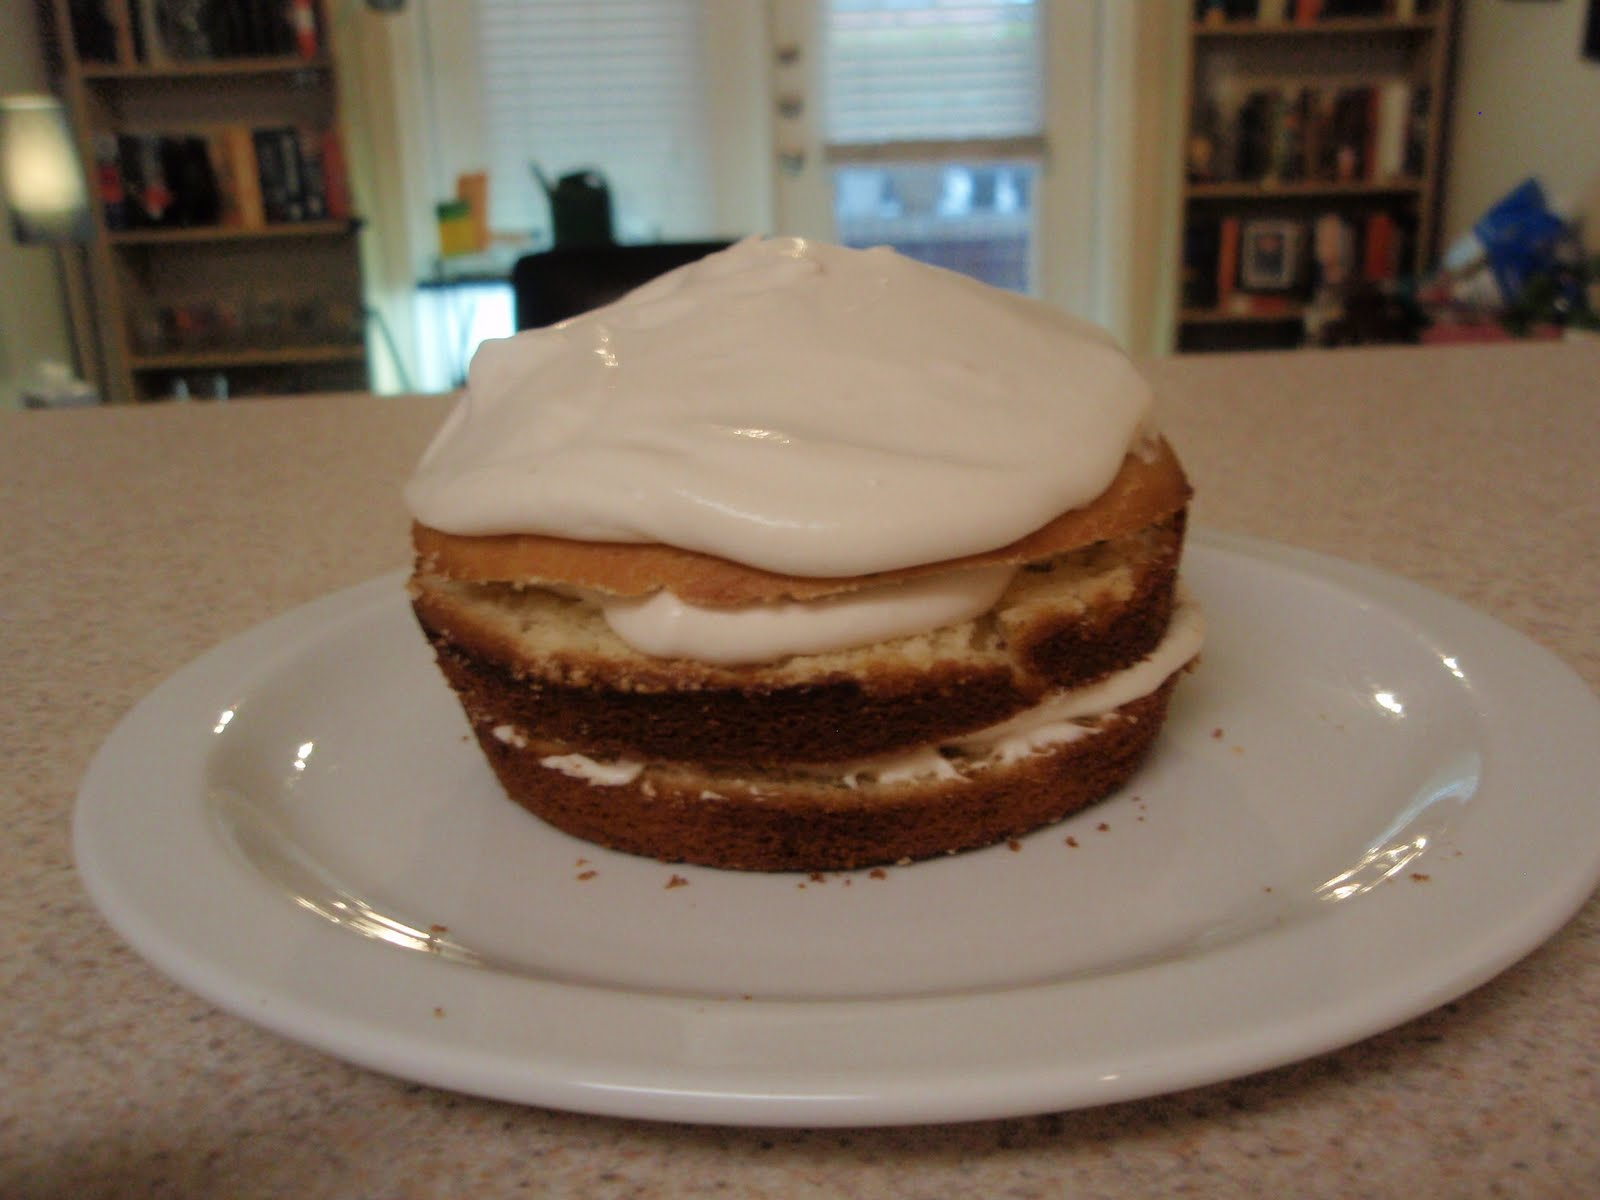 ... : Lemon-Thyme Olive Oil Cake with Balsamic Whipped Cream Frosting